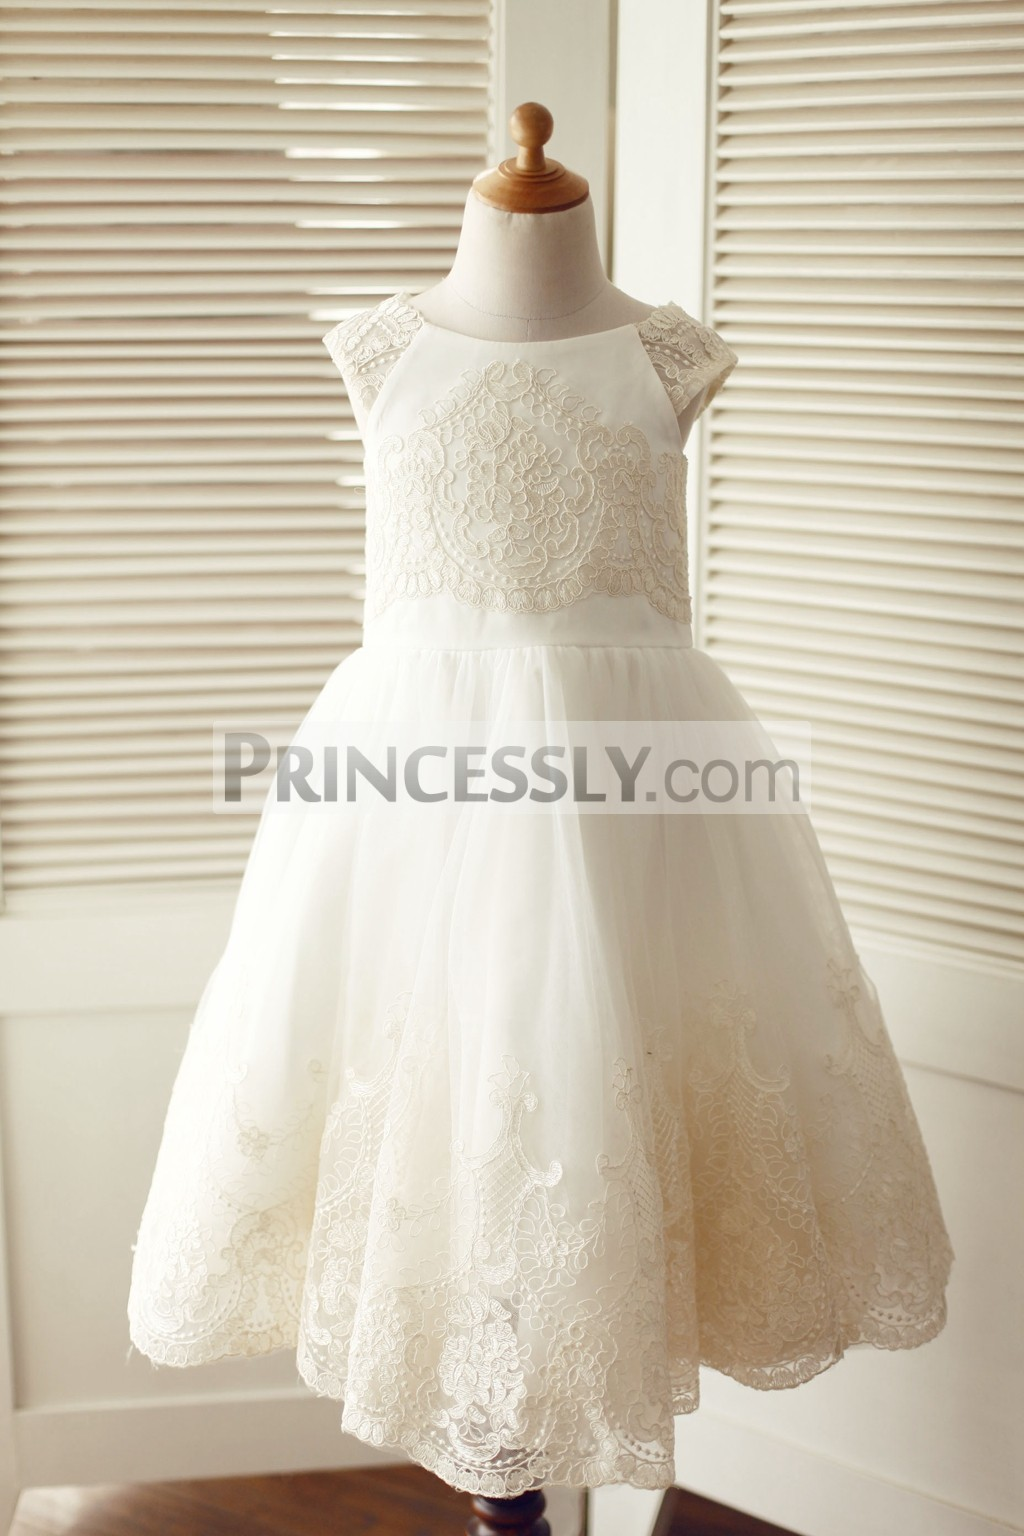 Cap Sleeves Champagne Lace Ivory Tulle Wedding Flower Girl